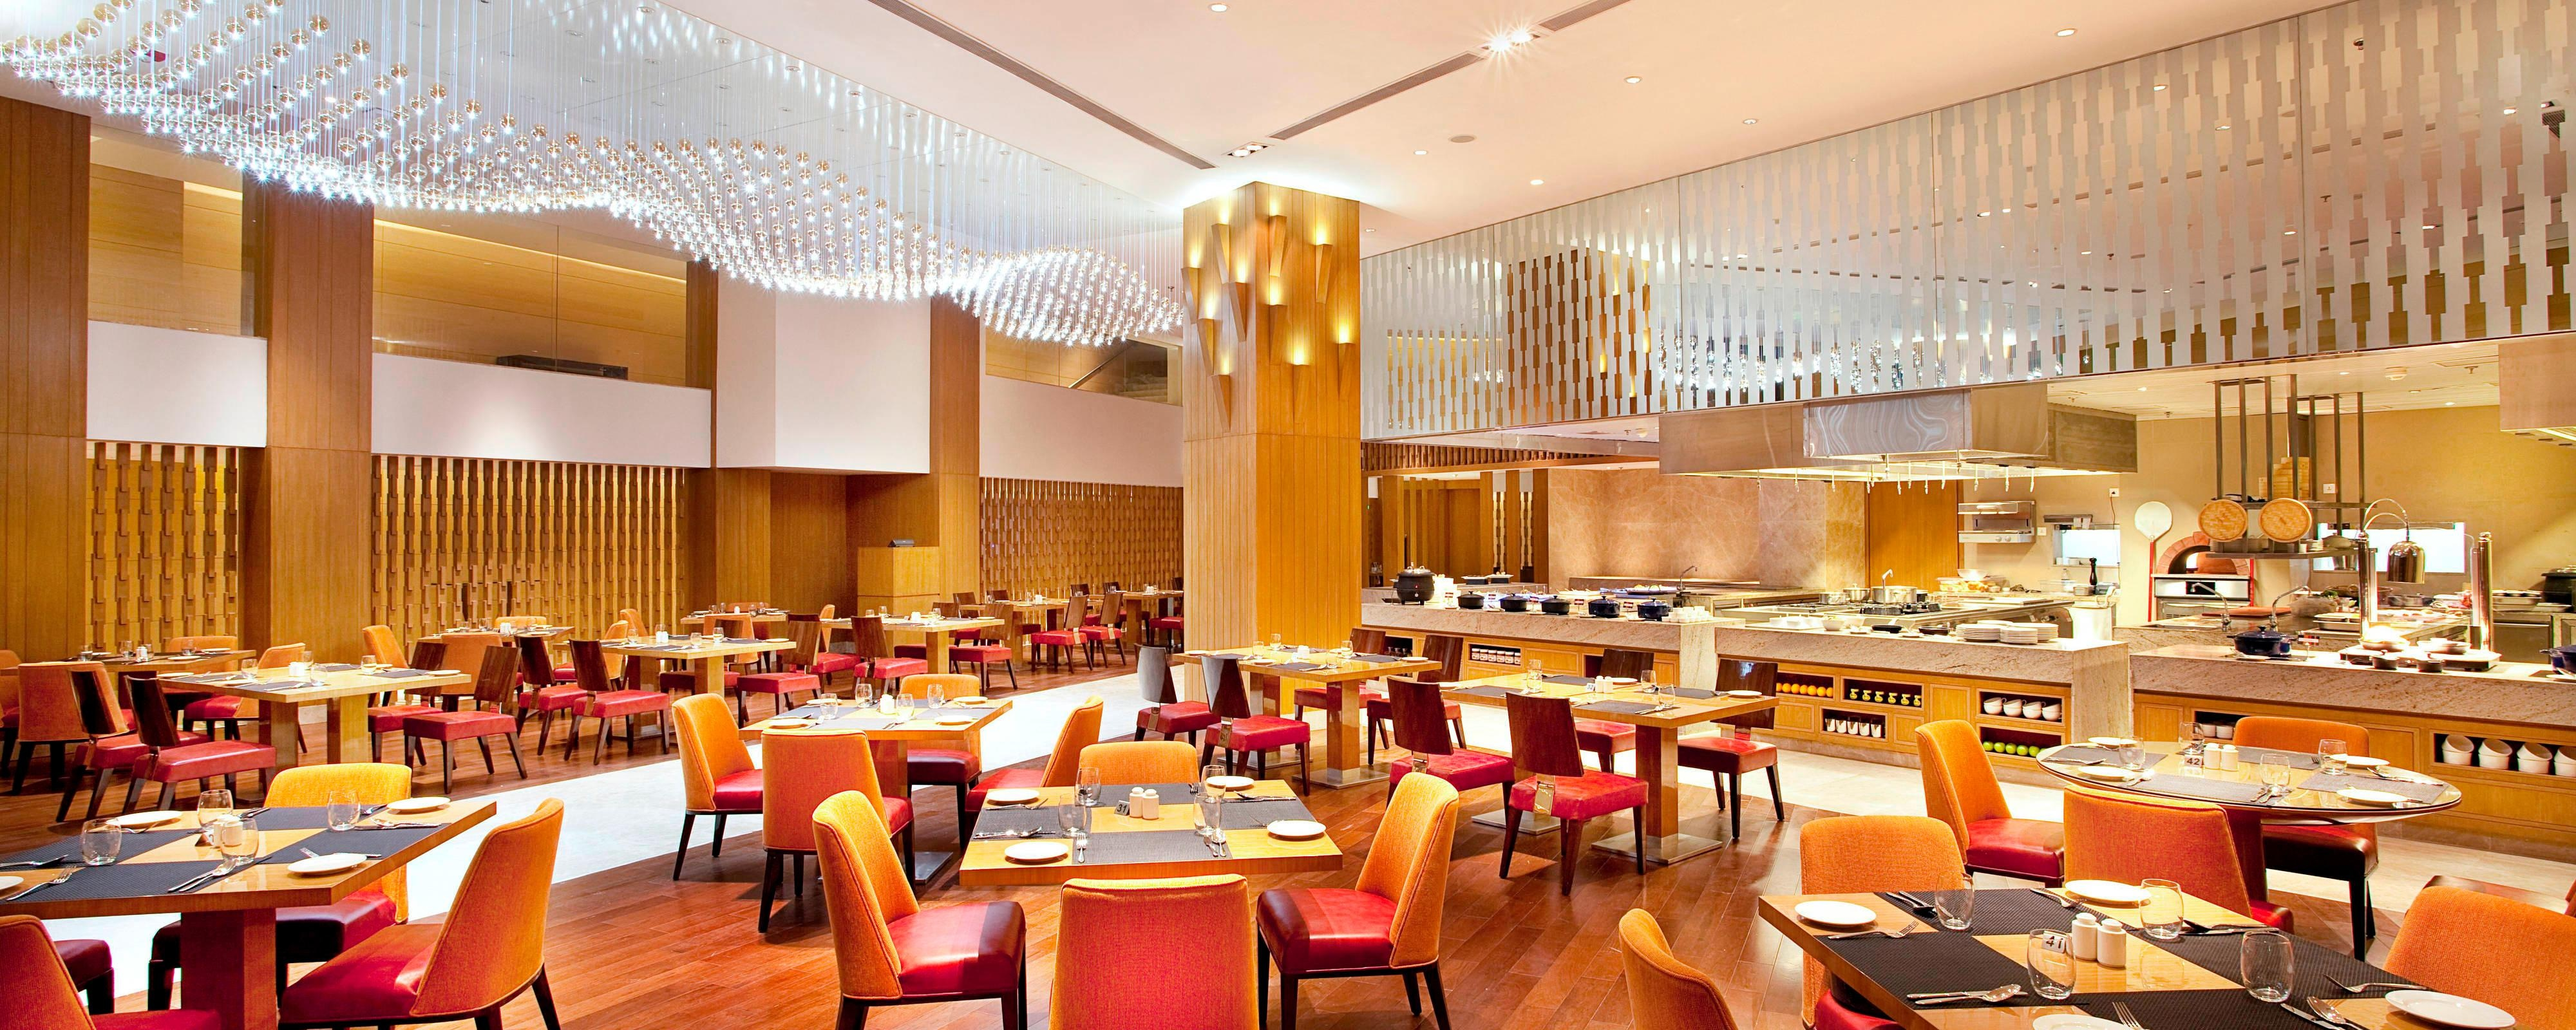 Restaurants and Lounges in Bhopal | Courtyard Bhopal